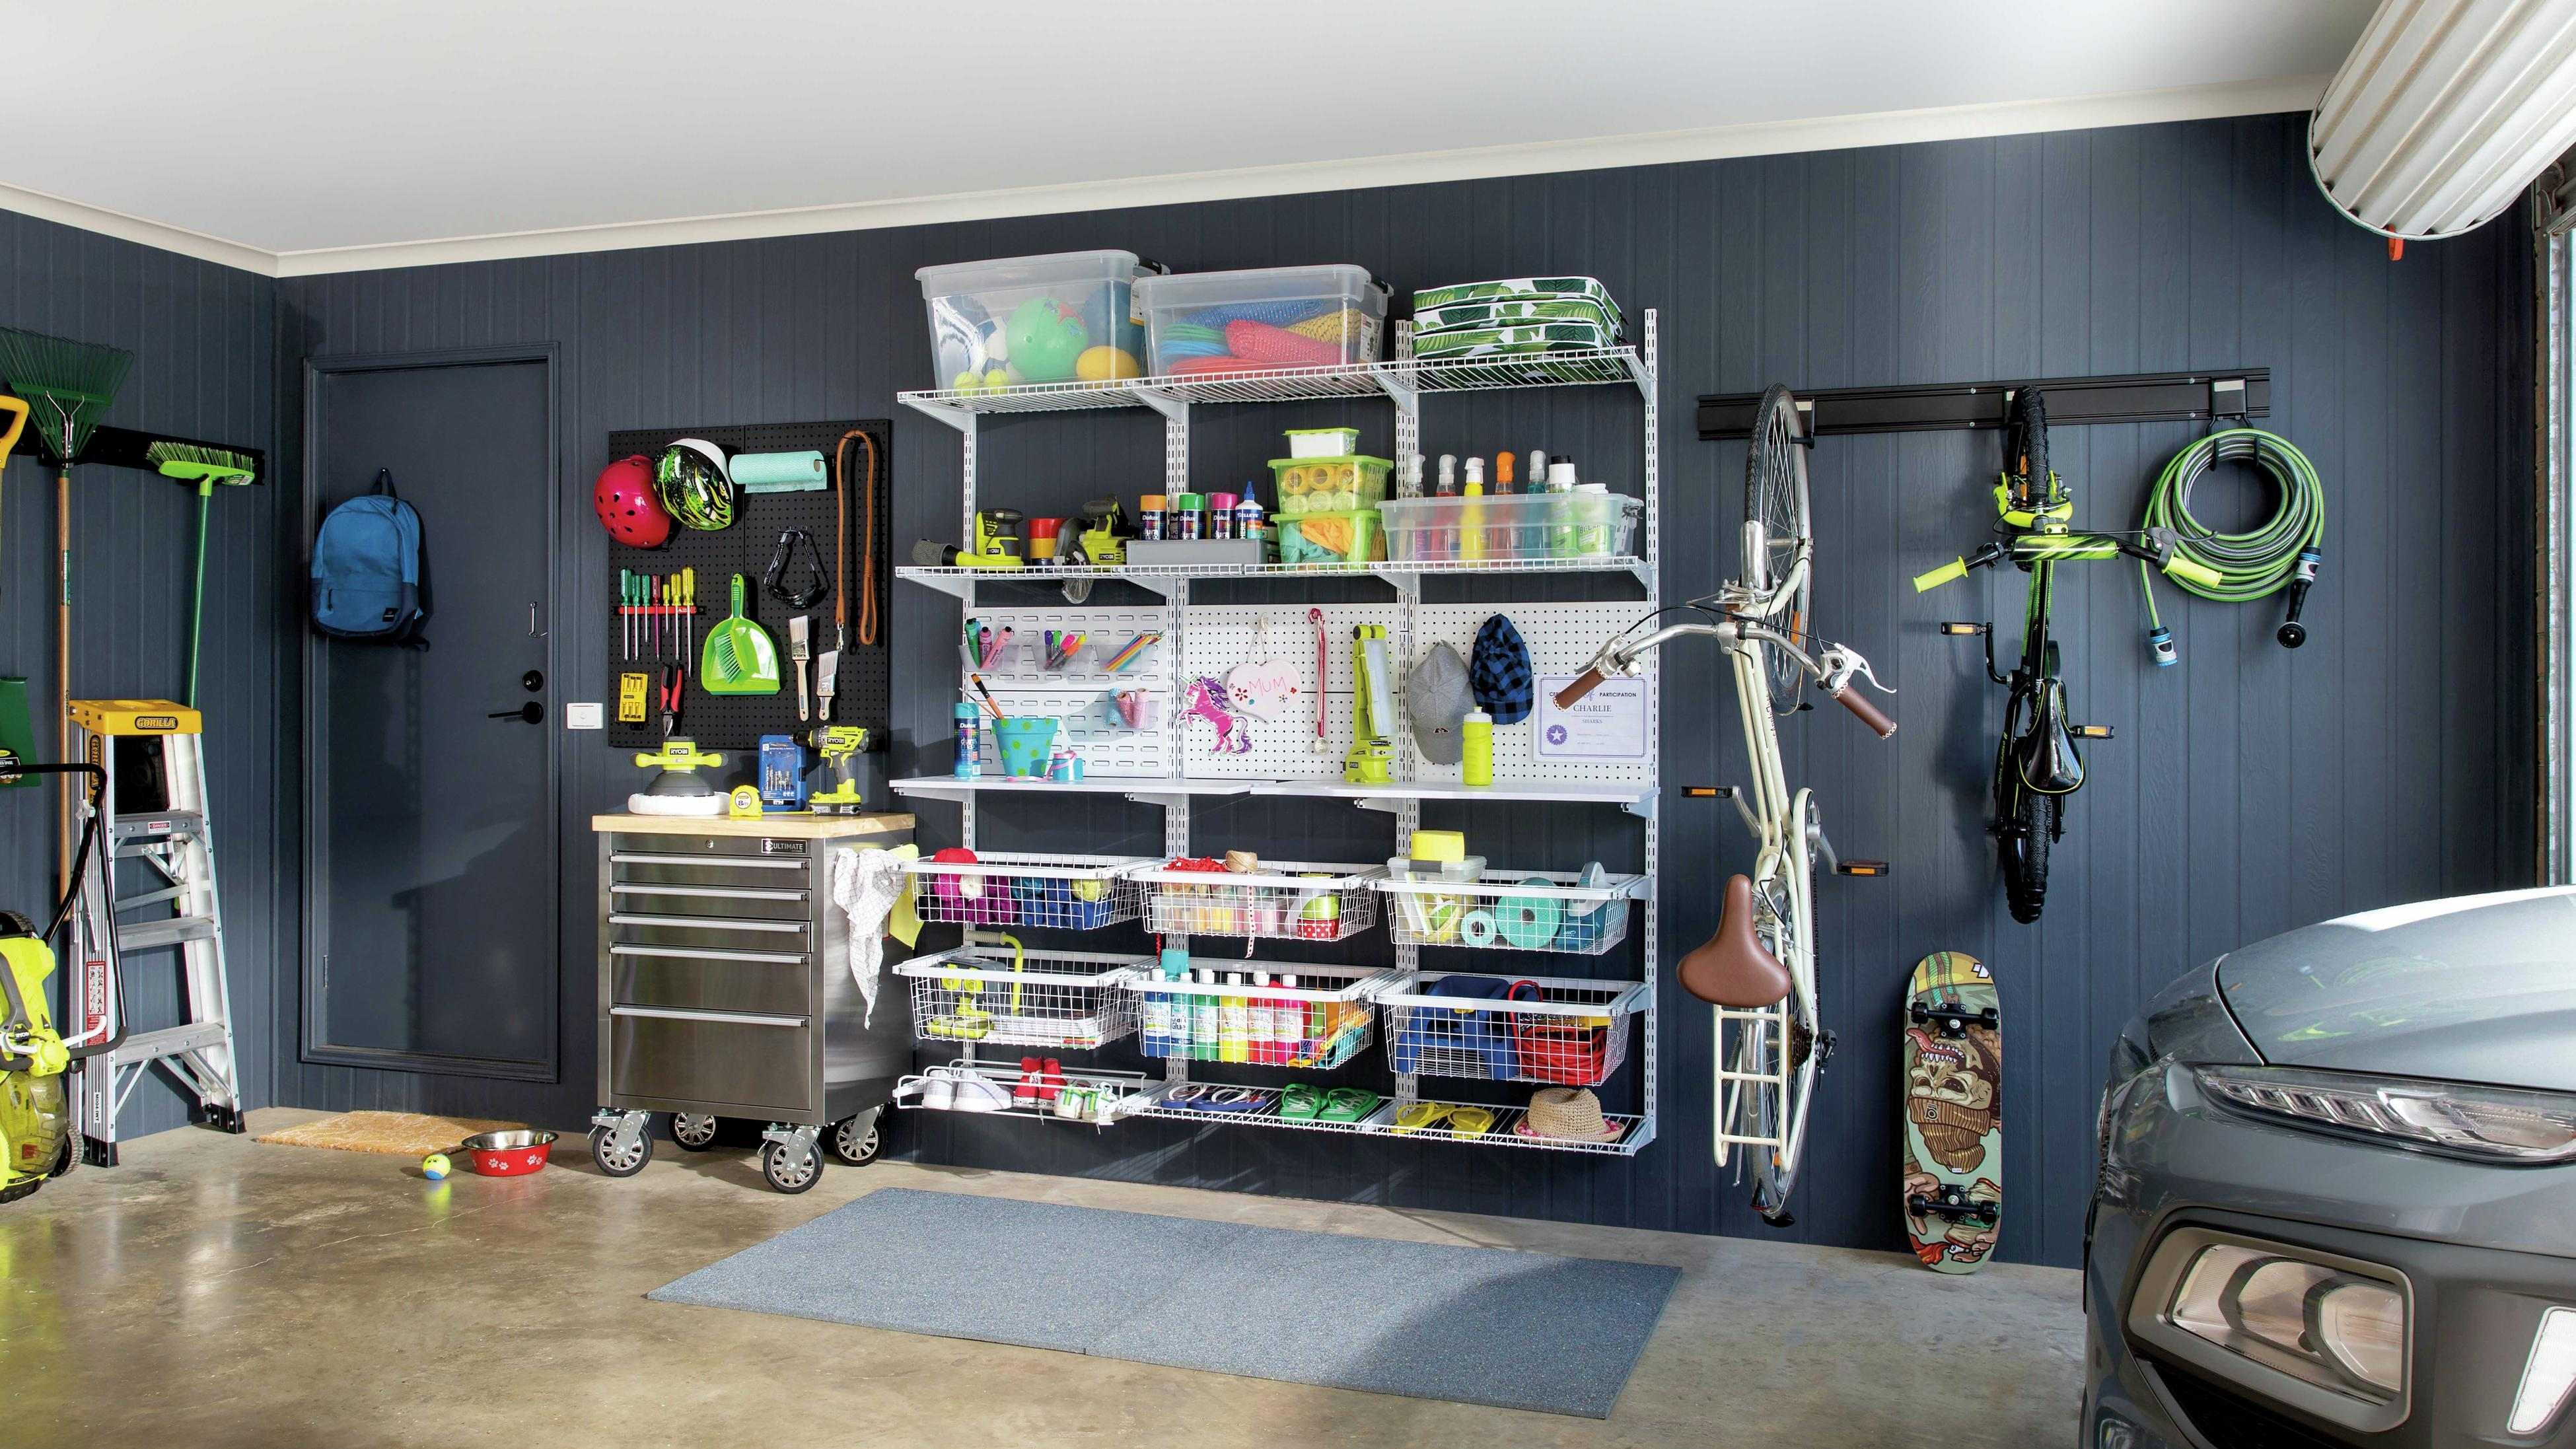 Garage with wire racking organisation and tools